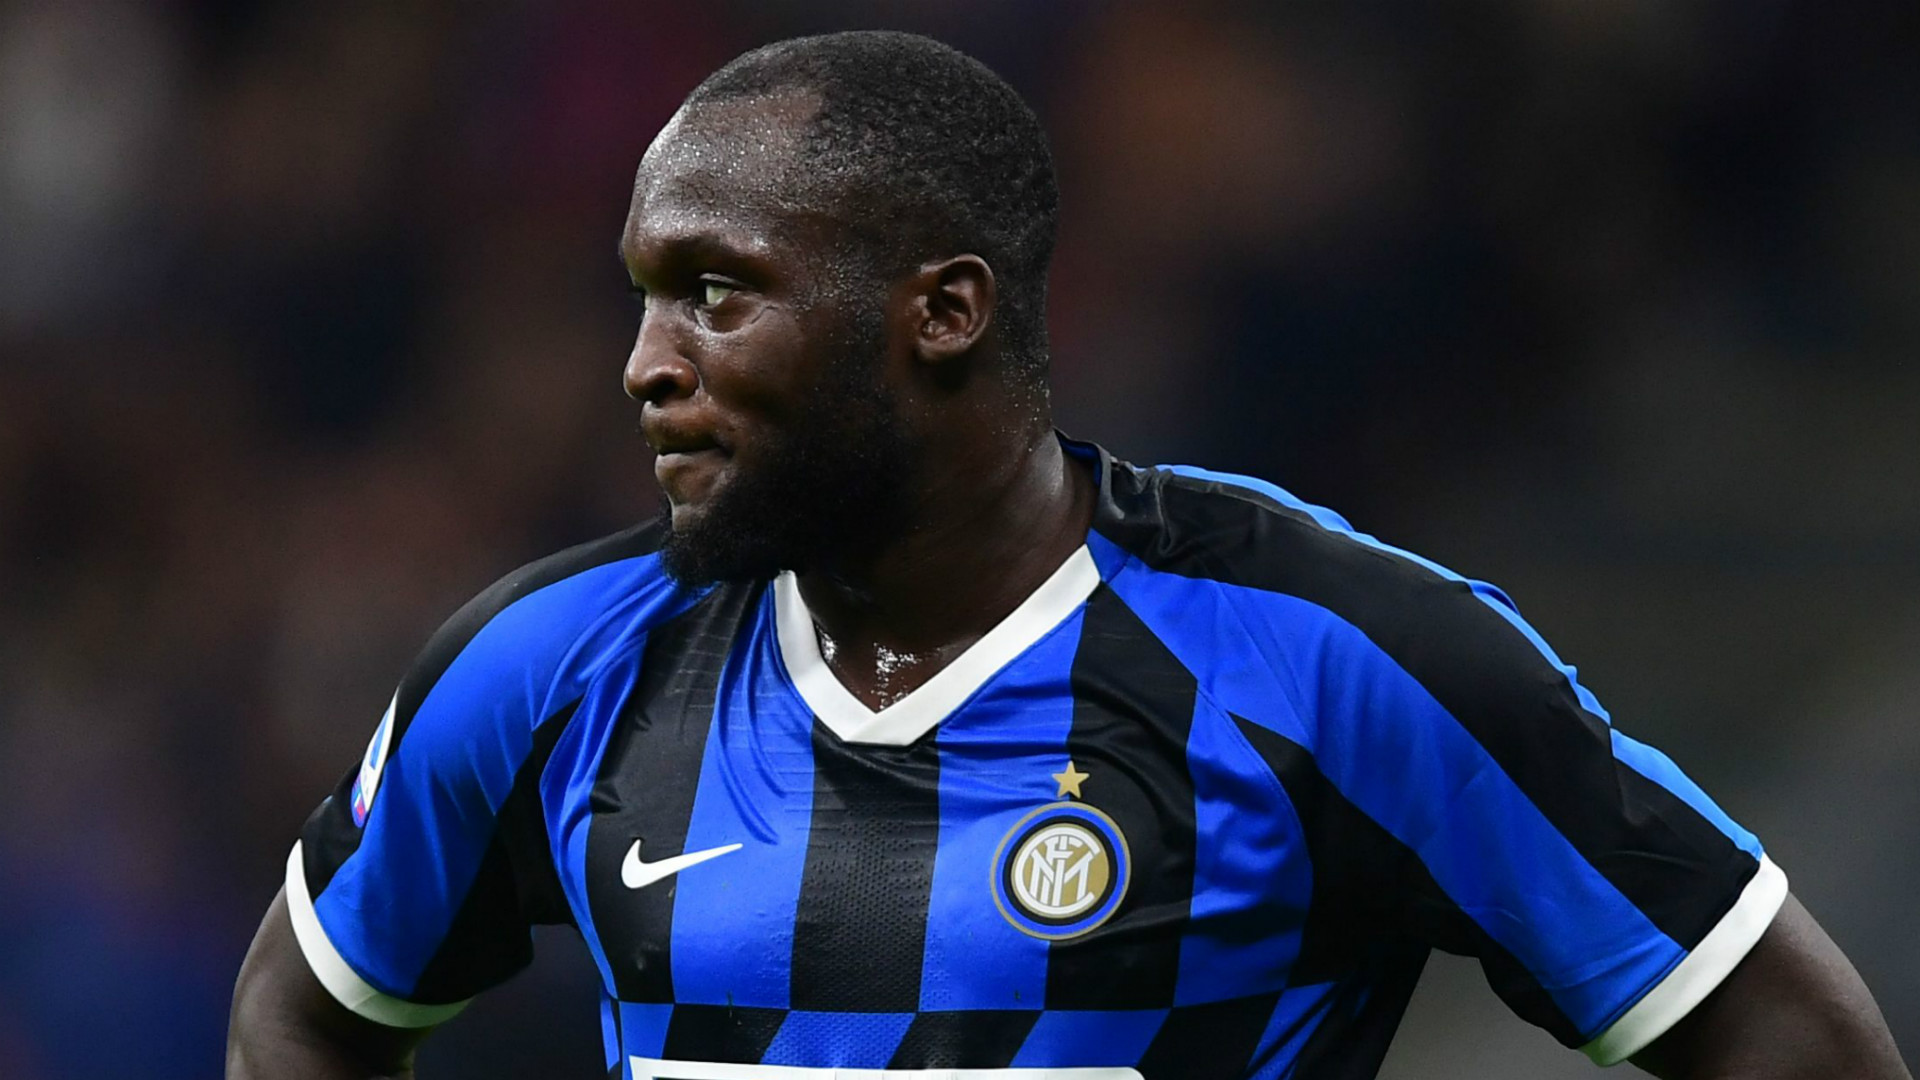 'I knew it would happen' - Lukaku not surprised by racism in Serie A as Inter star says UEFA 'must act'